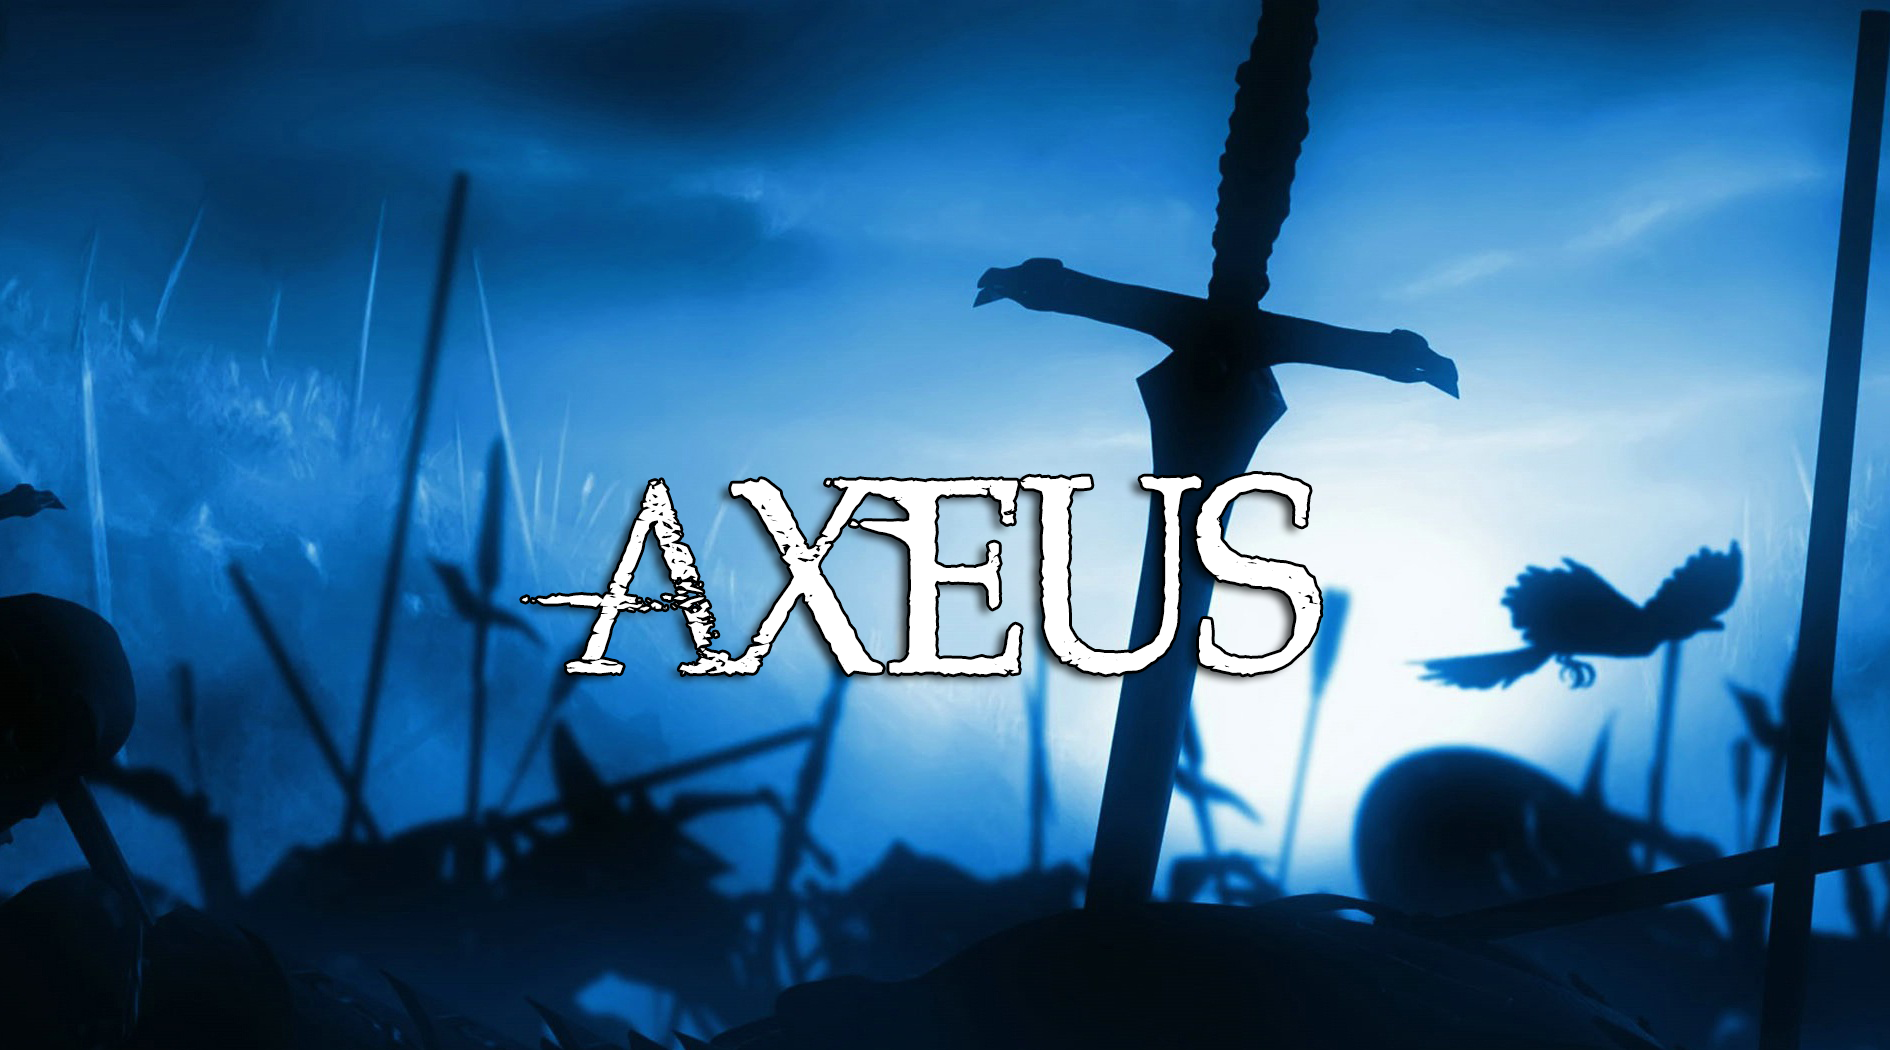 Axeus_Wallpaper.png